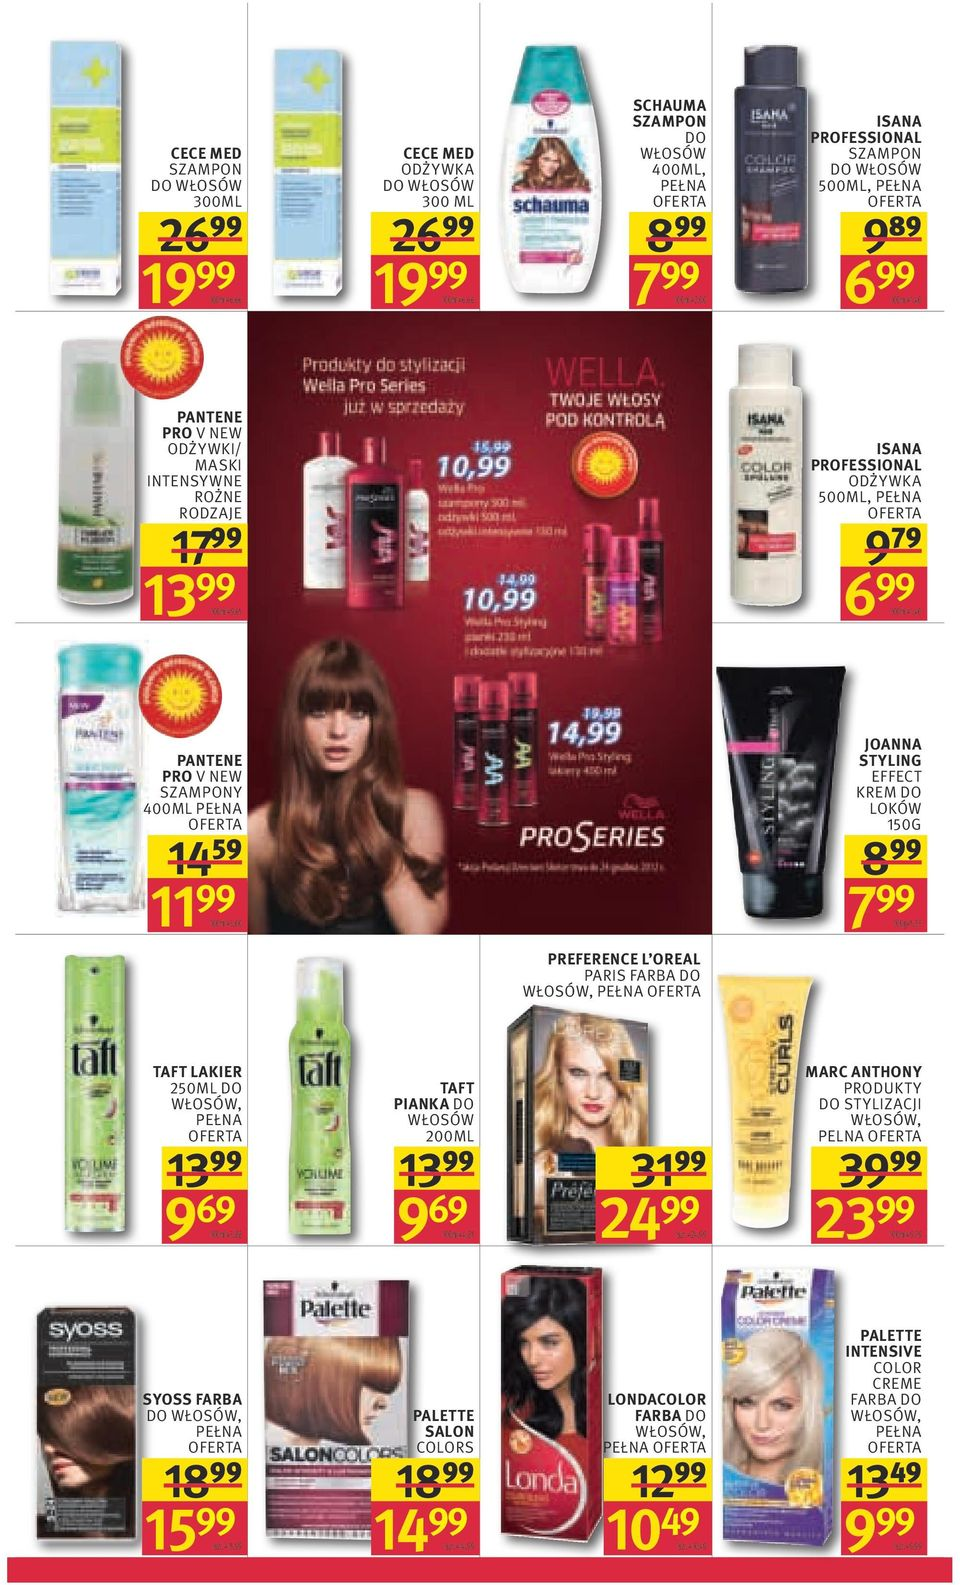 JOANNA STYLING EFFECT KREM DO LOKÓW 150G 7 99 100g=5,33 PREFERENCE L OREAL PARIS FARBA DO WŁOSÓW, TAFT LAKIER 250ML DO WŁOSÓW, 13 99 9 69 100ml=3,88 TAFT PIANKA DO WŁOSÓW 200ML 13 99 9 69 100ml=4,85